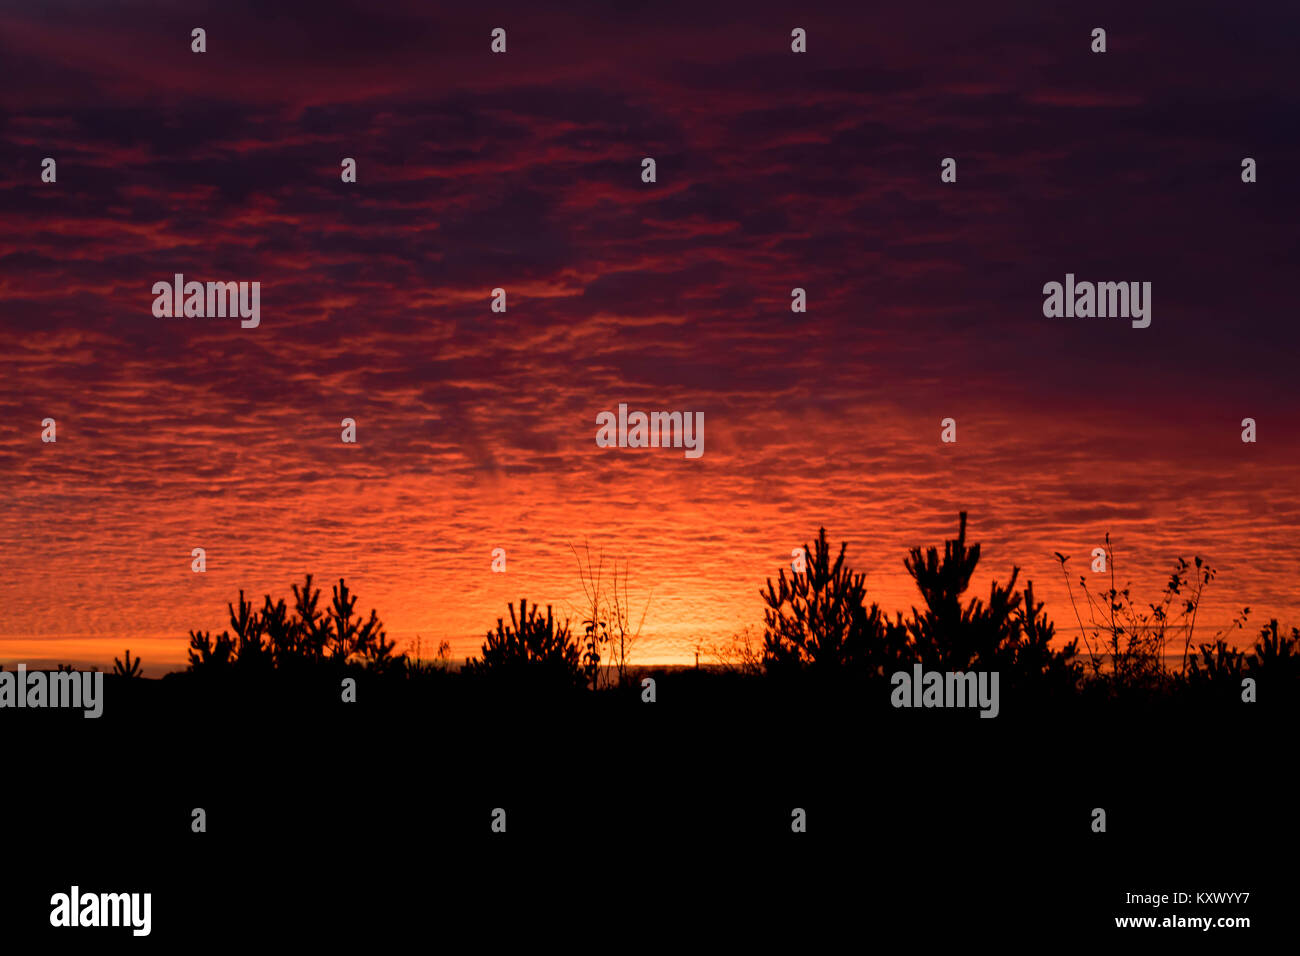 sun set with funny clouds - Stock Image